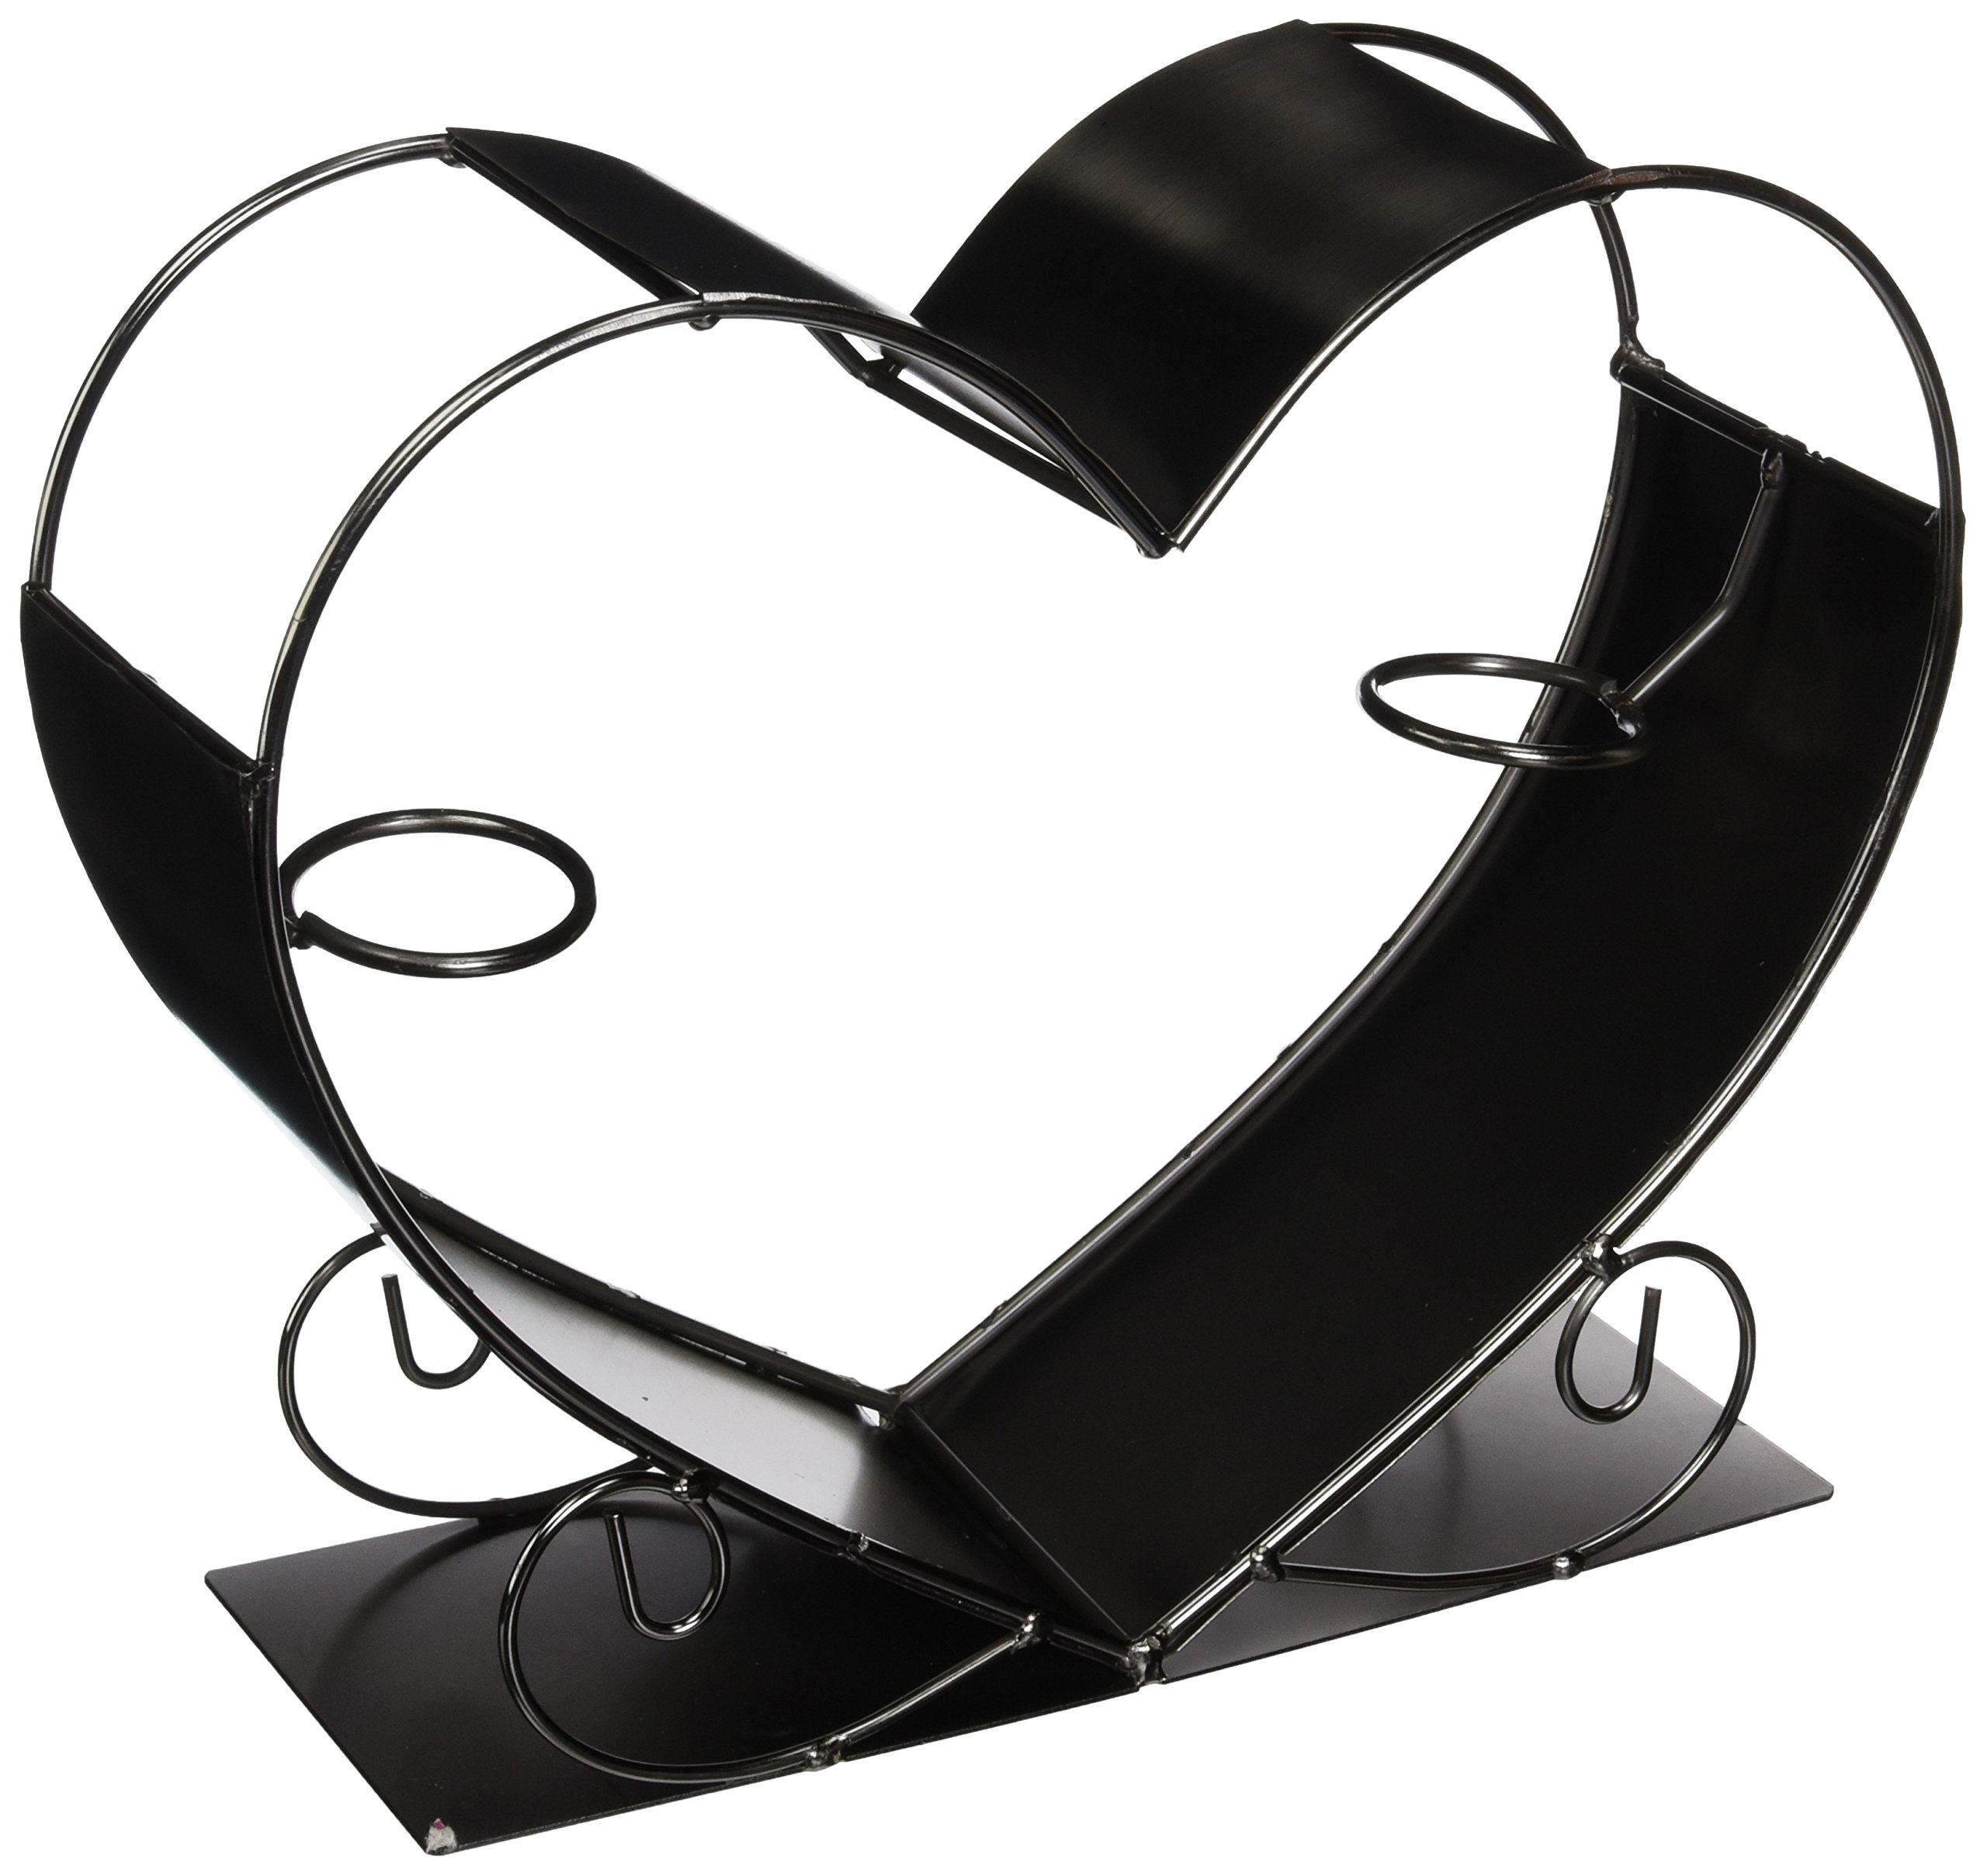 WINE BODIES ZB1190 Big Heart Metal Wine Bottle Holder, Charcoal by Wine Bodies